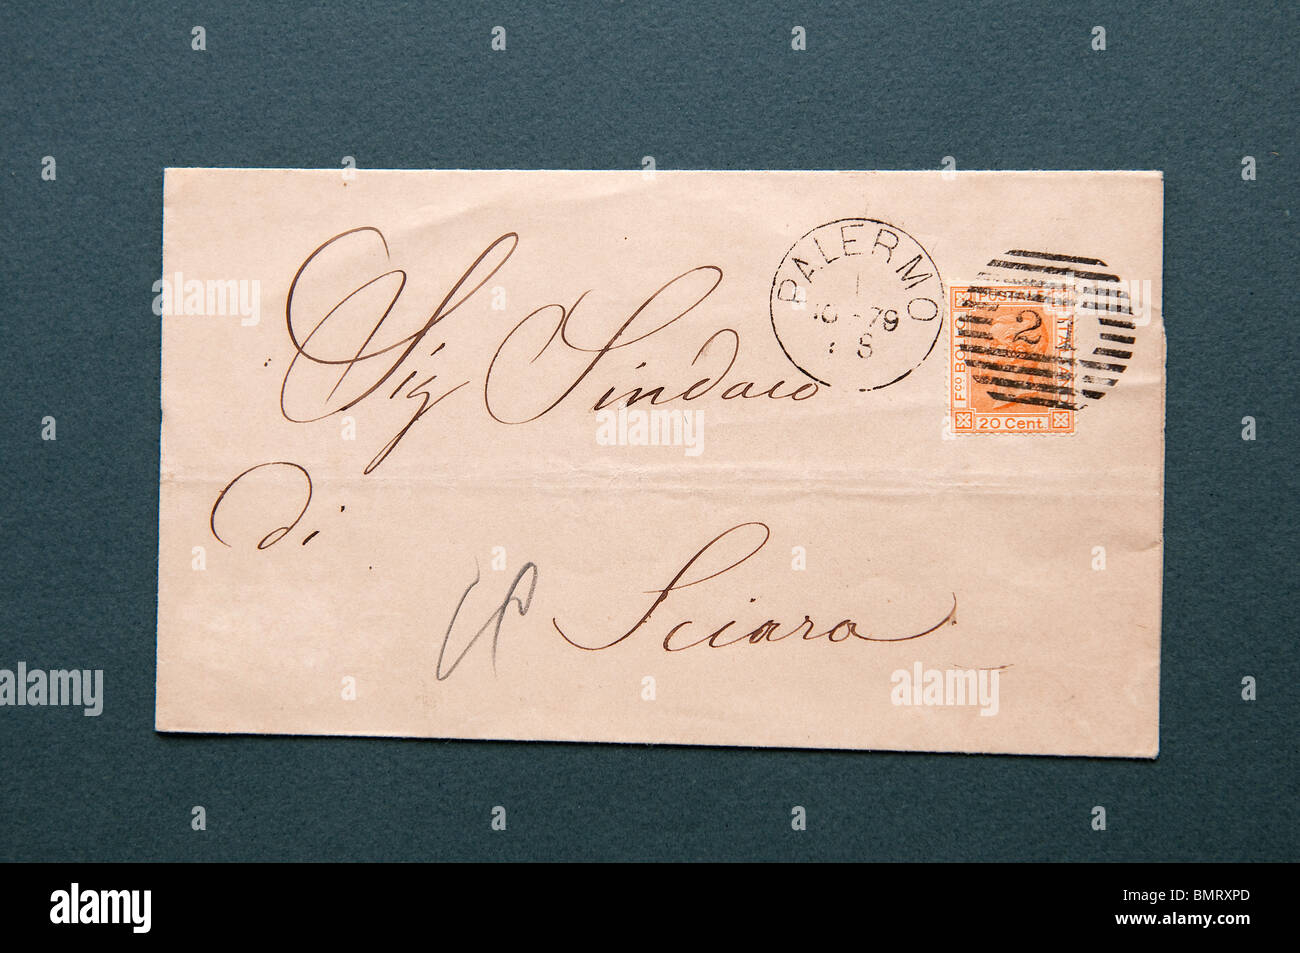 An Envelope With 20 Cent Italy Kingdom Stamp 1865 The Effigy Of Vittorio Emanuele II King